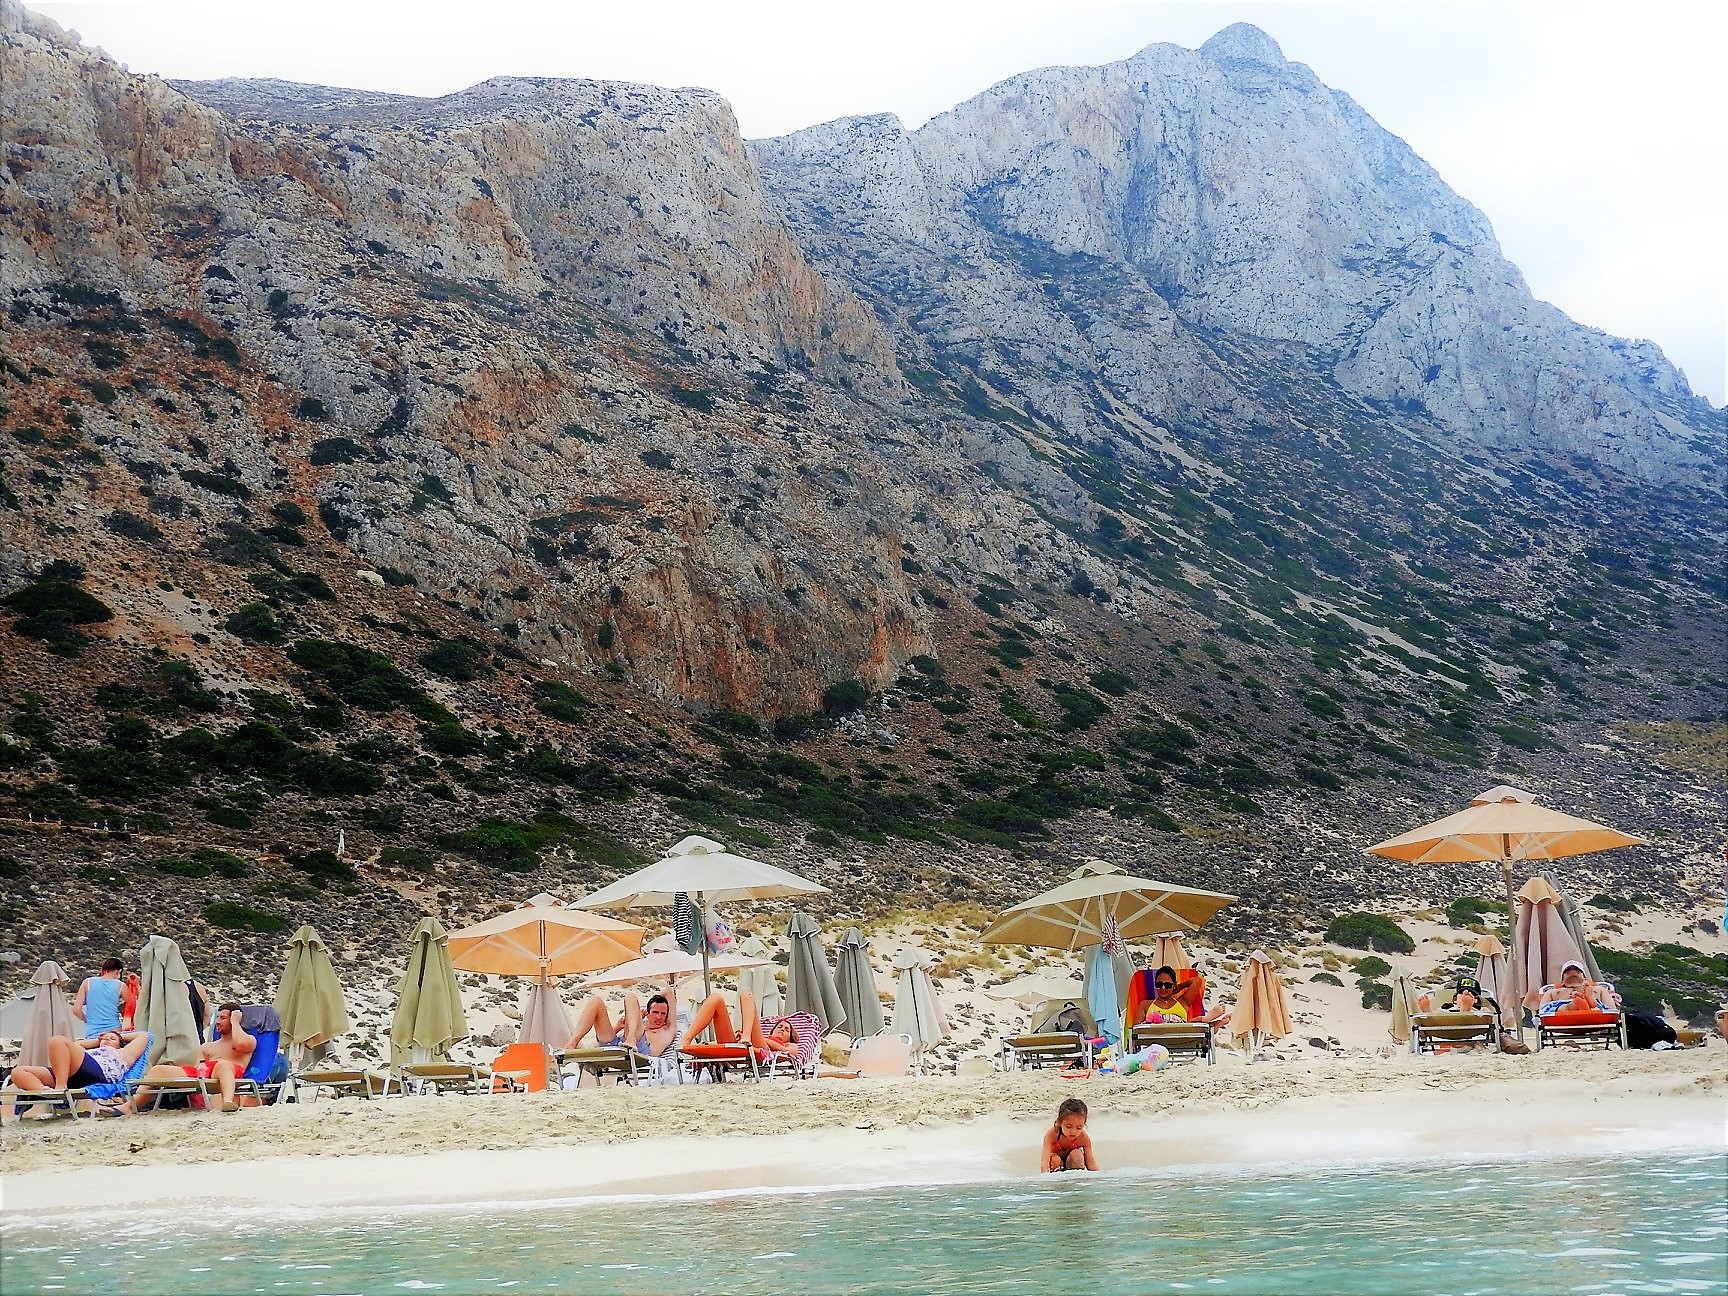 Lara at the beautiful Balos Lagoon, Crete